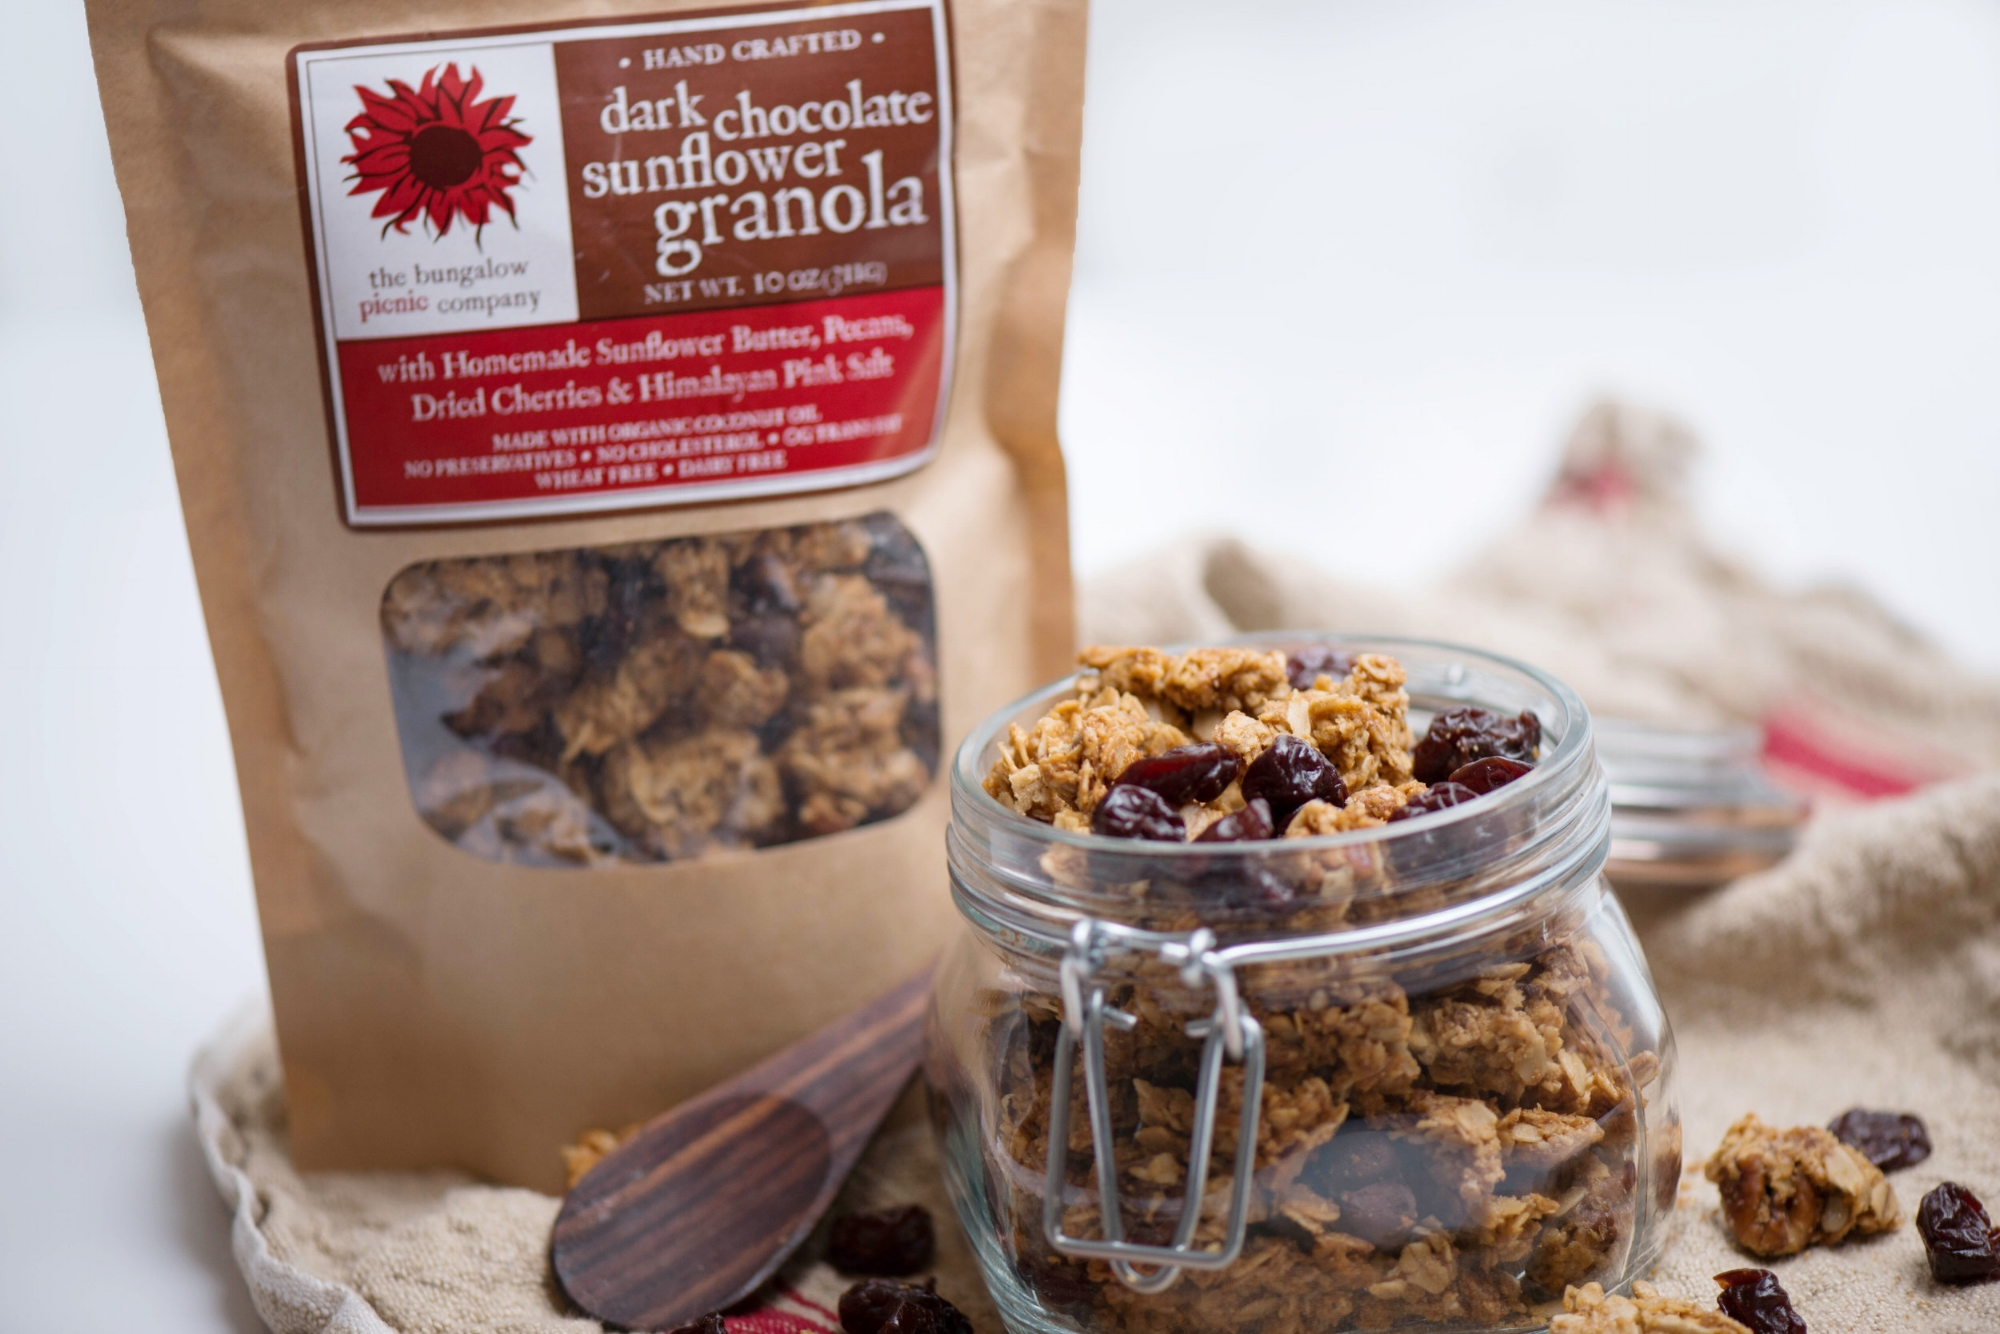 Online Farmers Market, Wheat Free Cereal, Bungalow Picnic Cereal, Delicious Granola